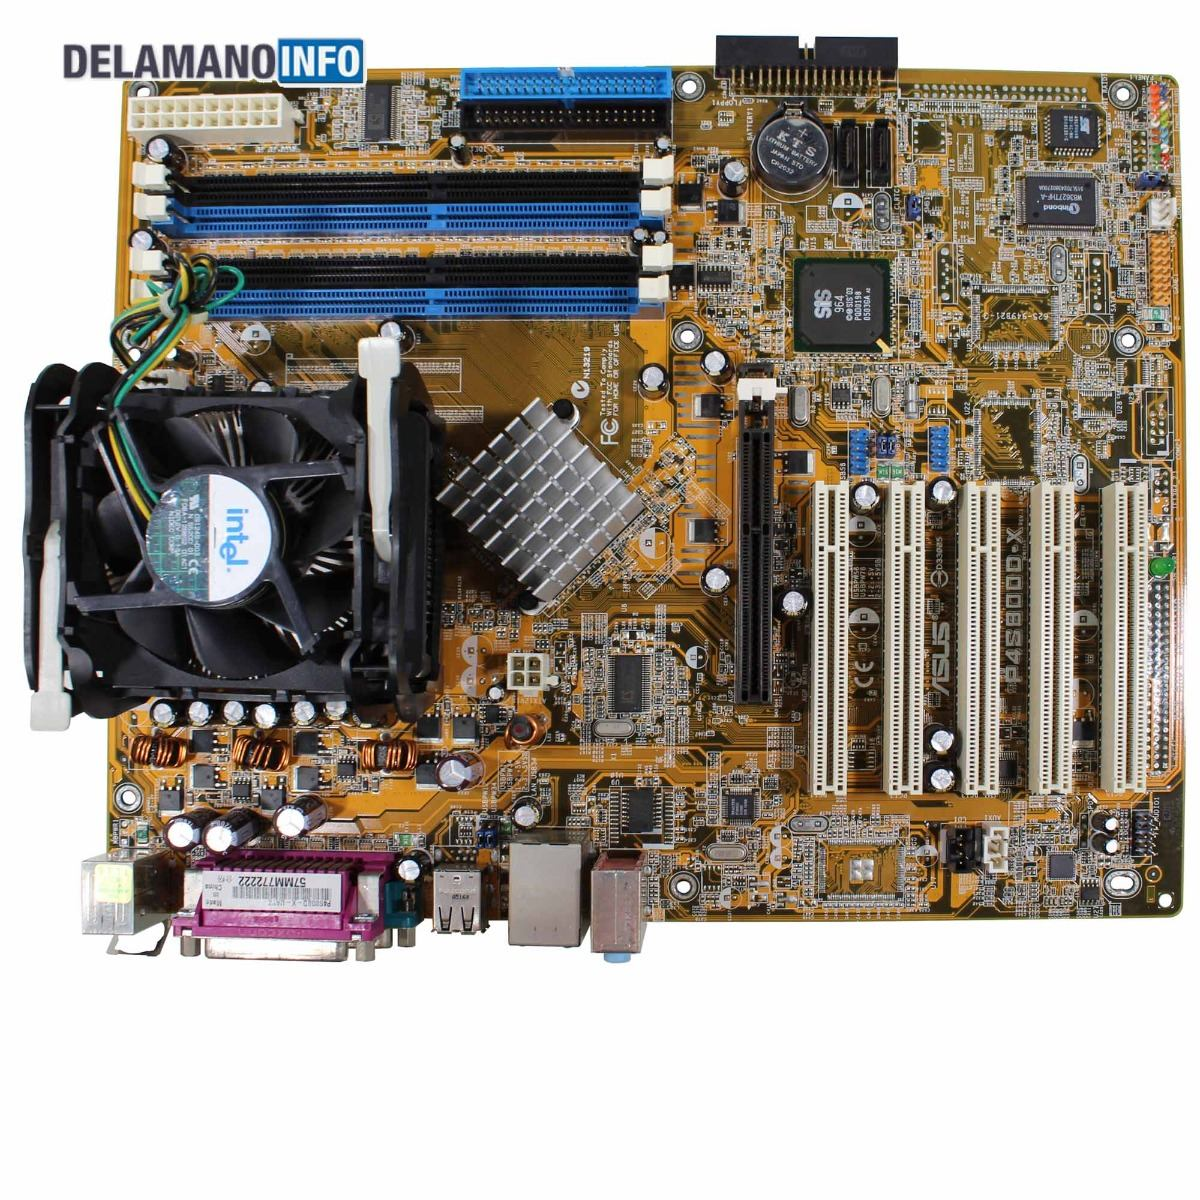 ASUS P4S800D-X MOTHERBOARD WINDOWS 8.1 DRIVER DOWNLOAD